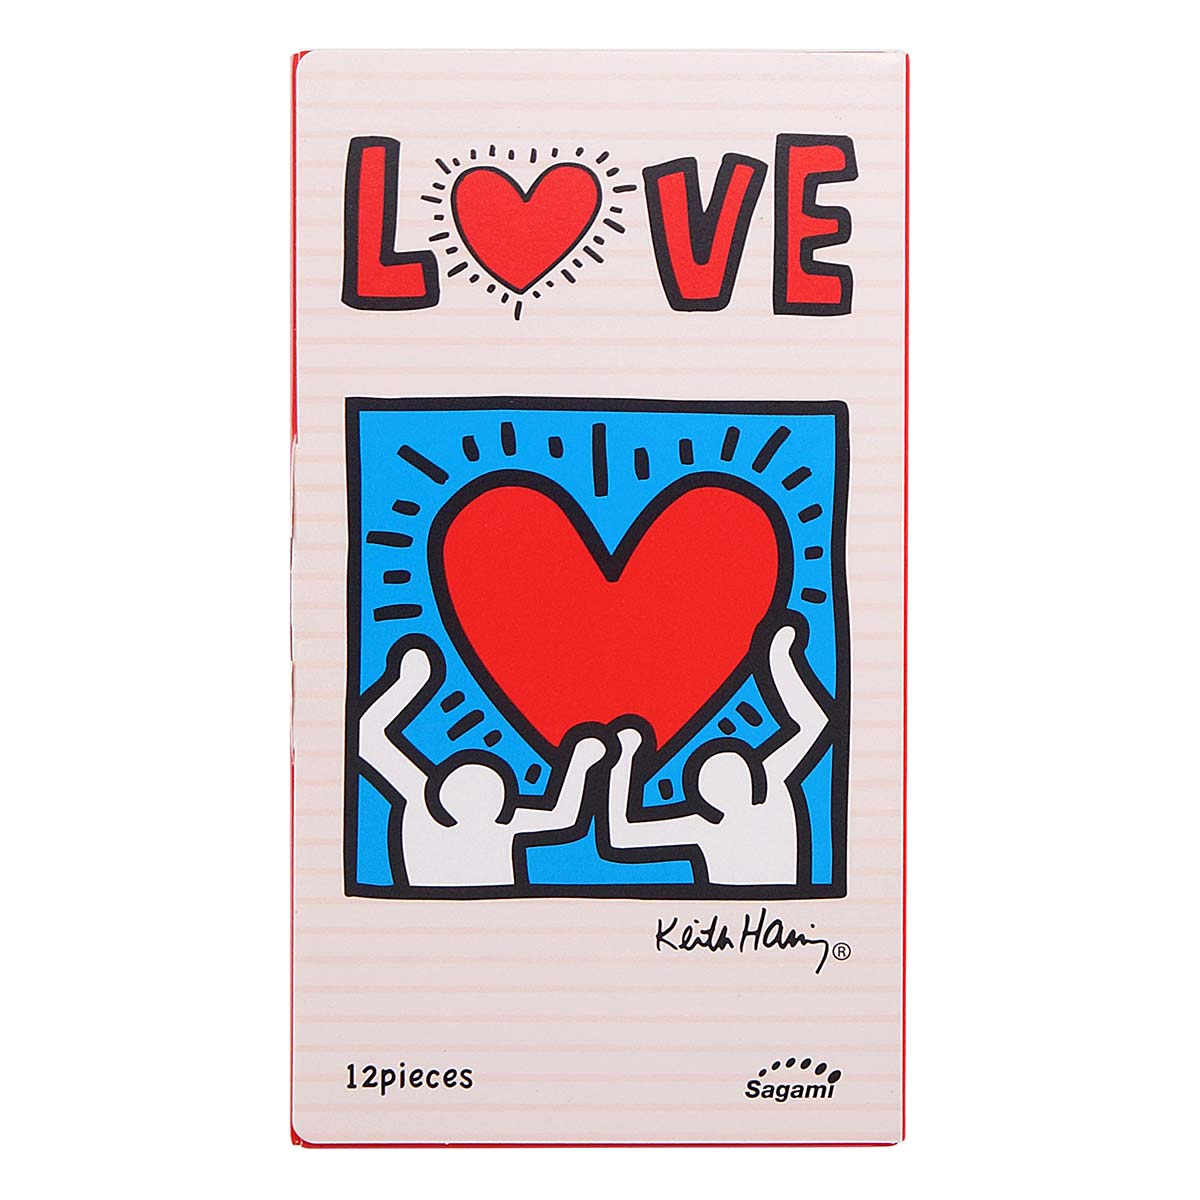 Sagami LOVE Keith Haring 12's Pack Latex Condom